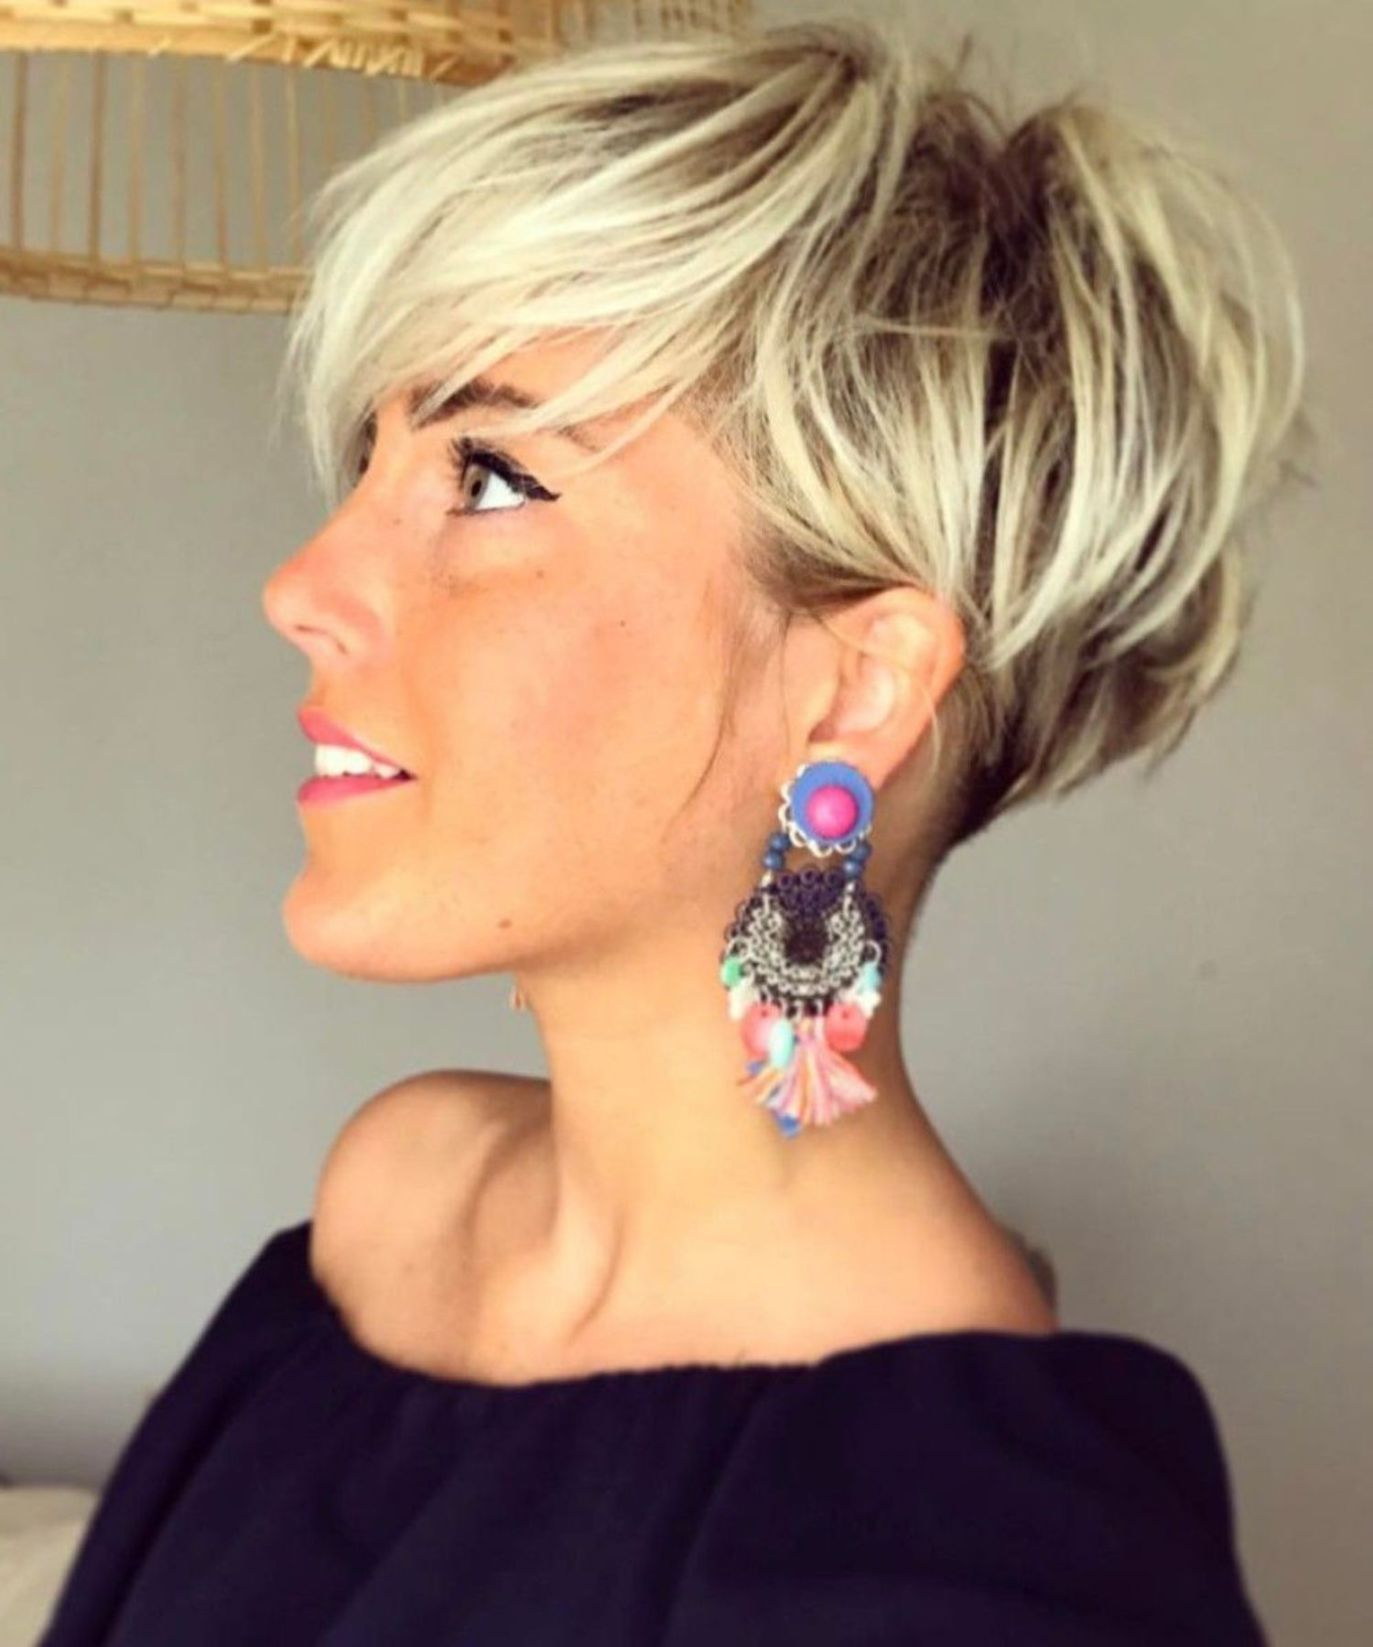 70 Short Shaggy Spiky Edgy Pixie Cuts And Hairstyles In 2018